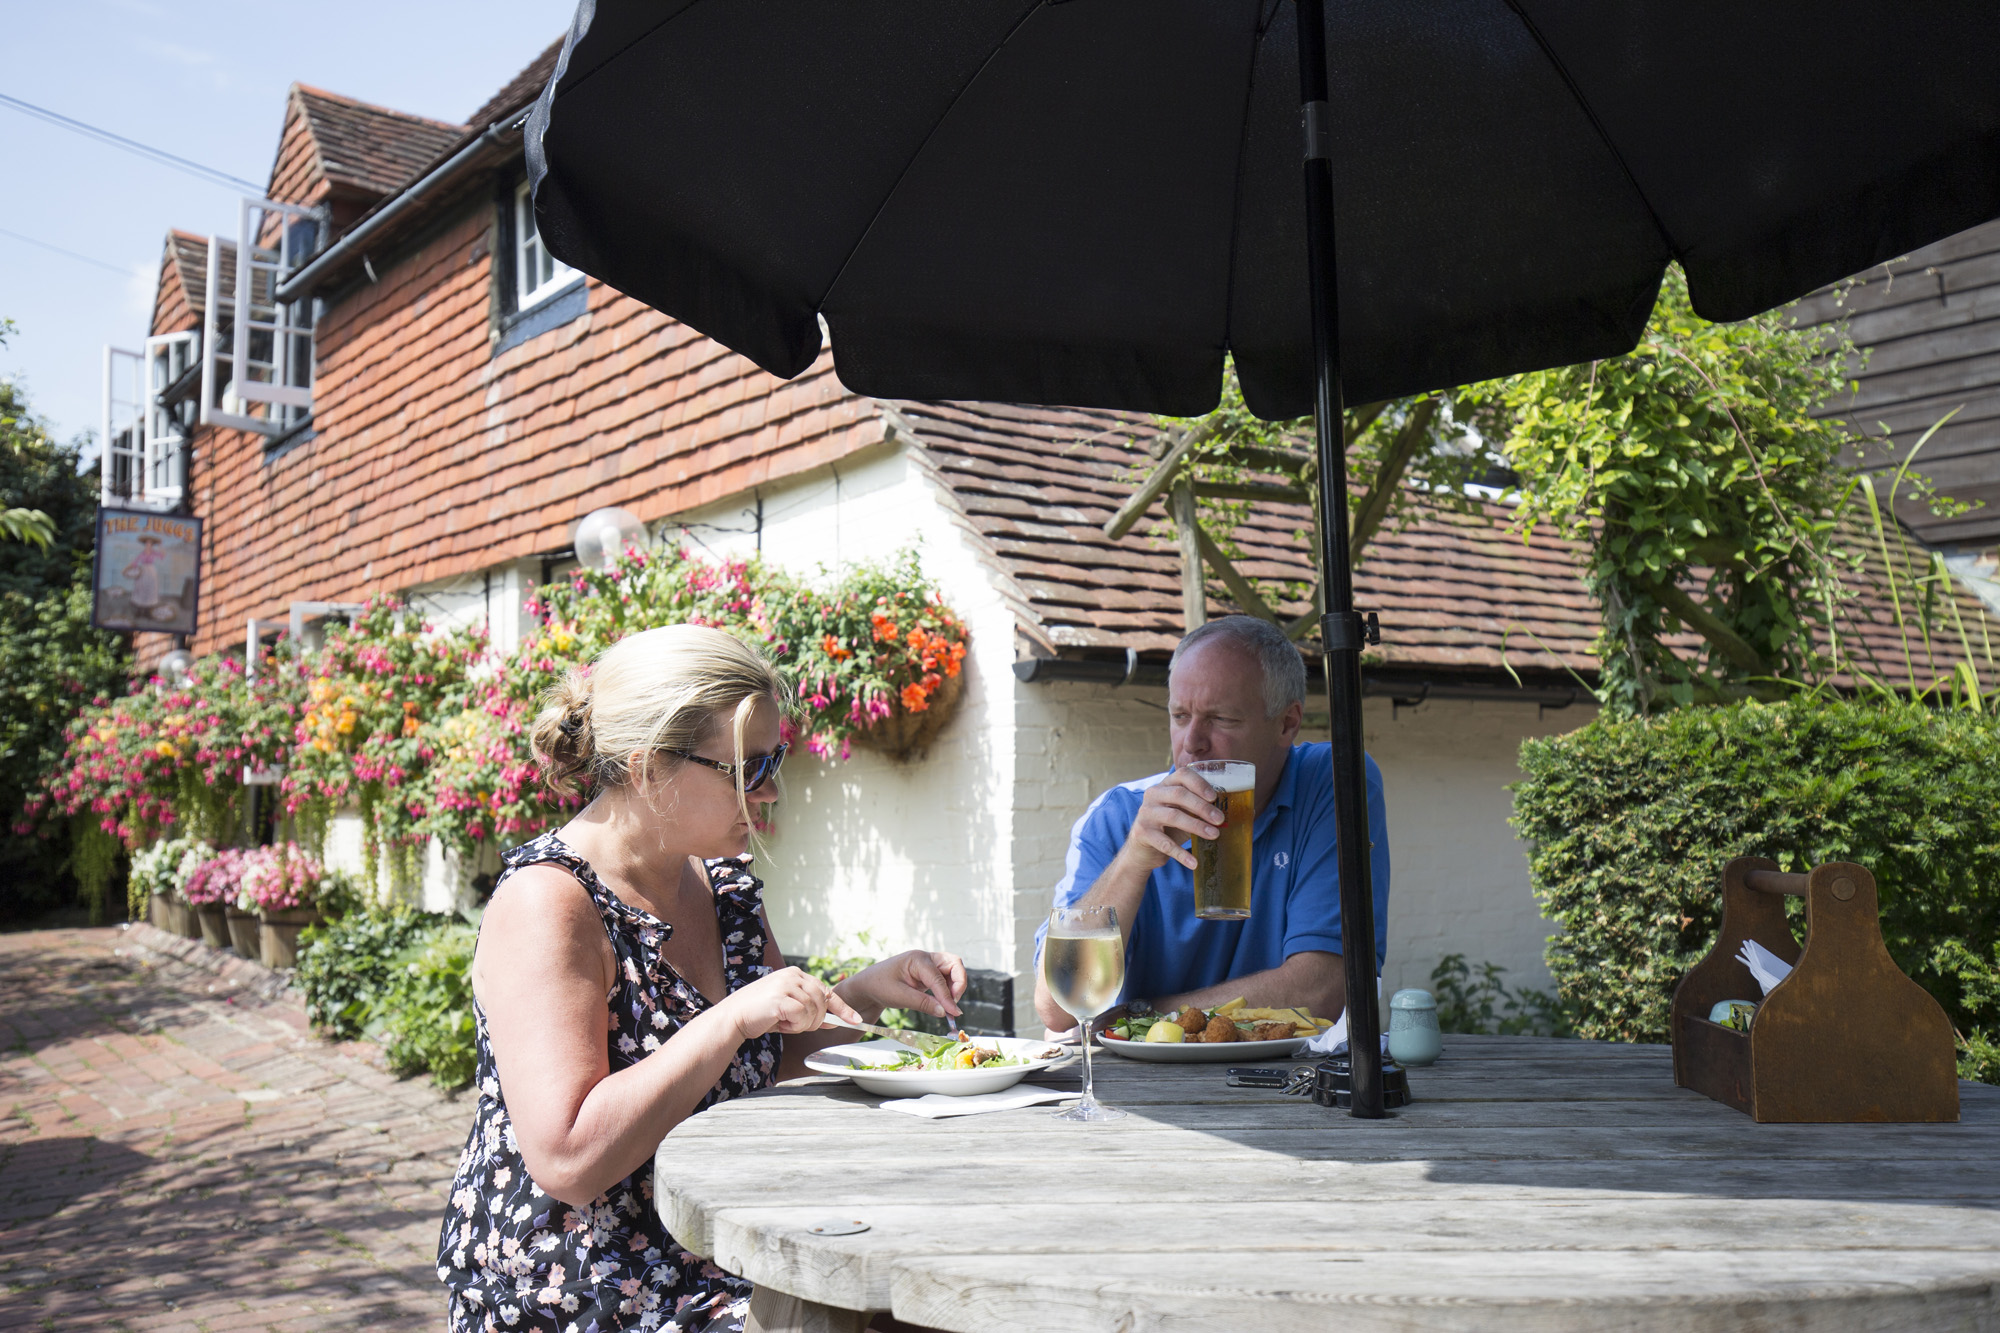 Juggs, Lewes - Lunch in the garden